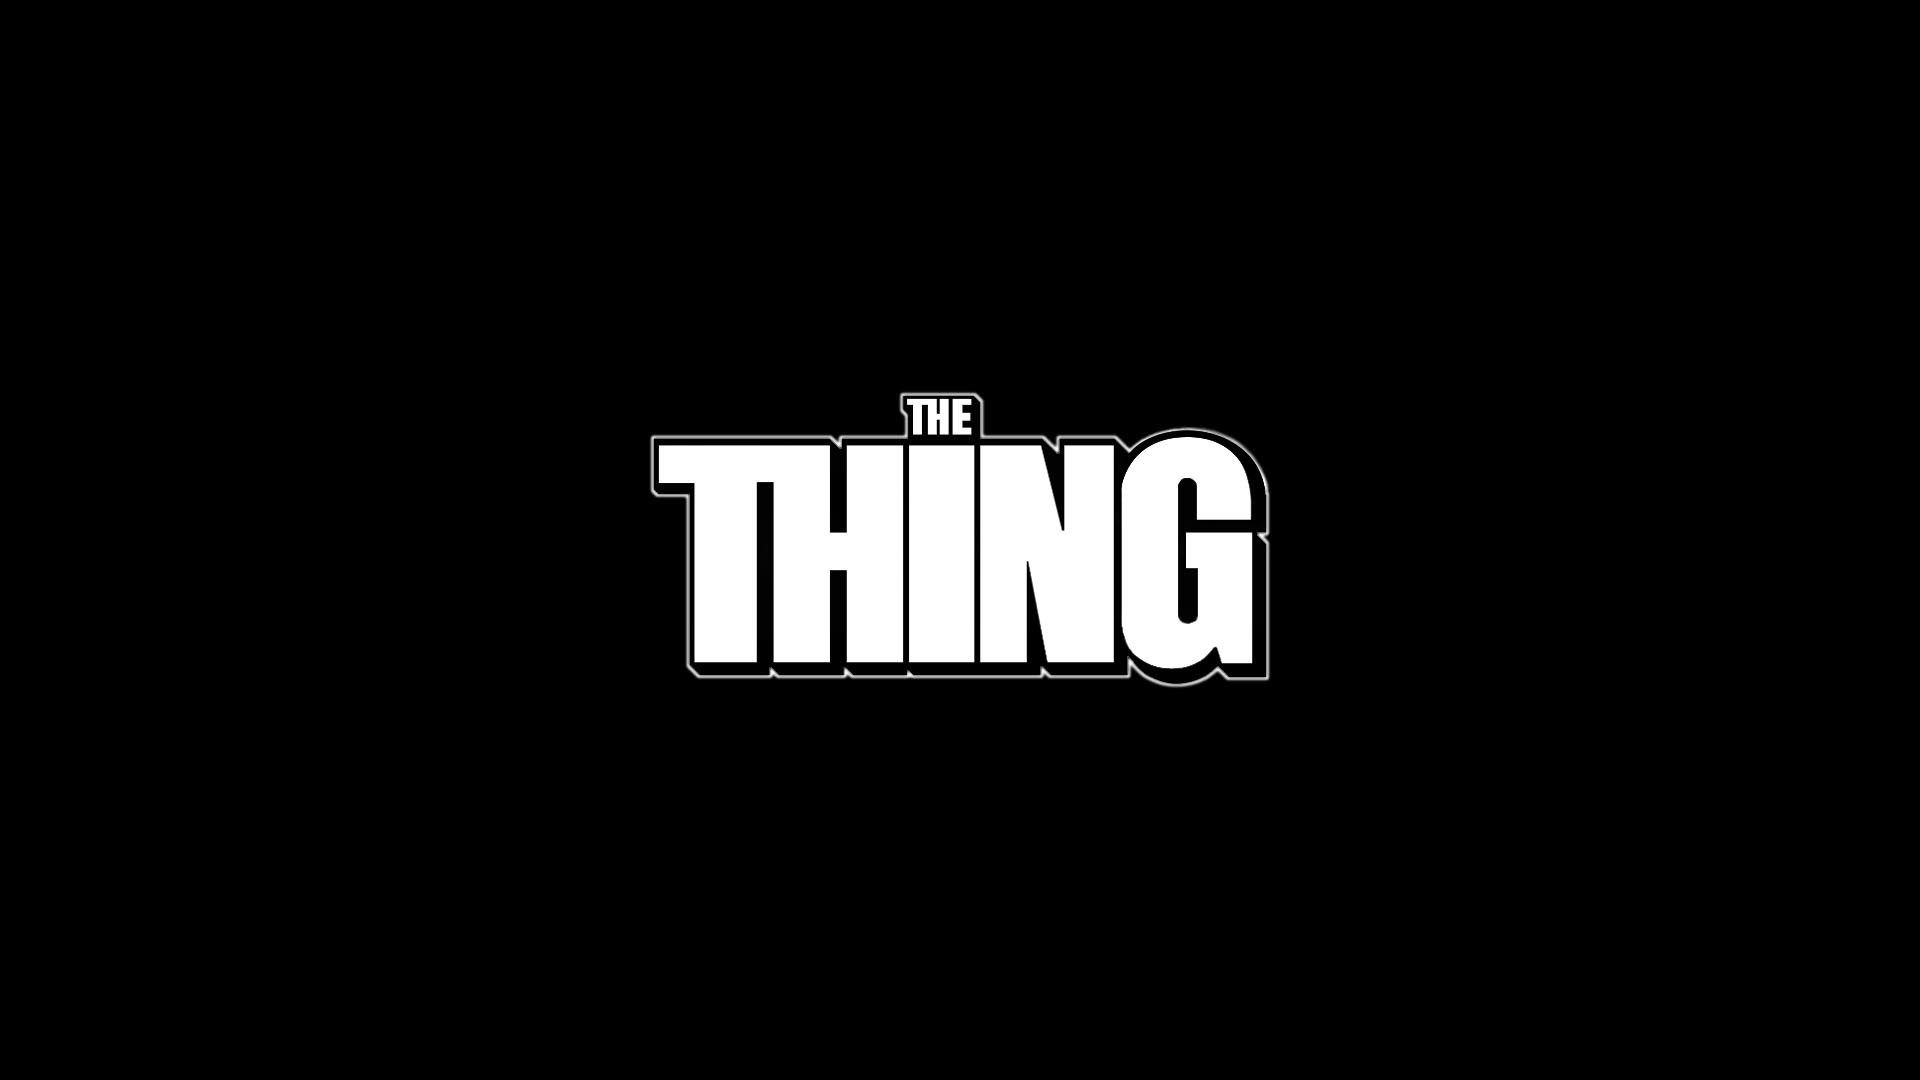 the thing 1982 pic full hd, Viscounte Leapman 2017-03-10